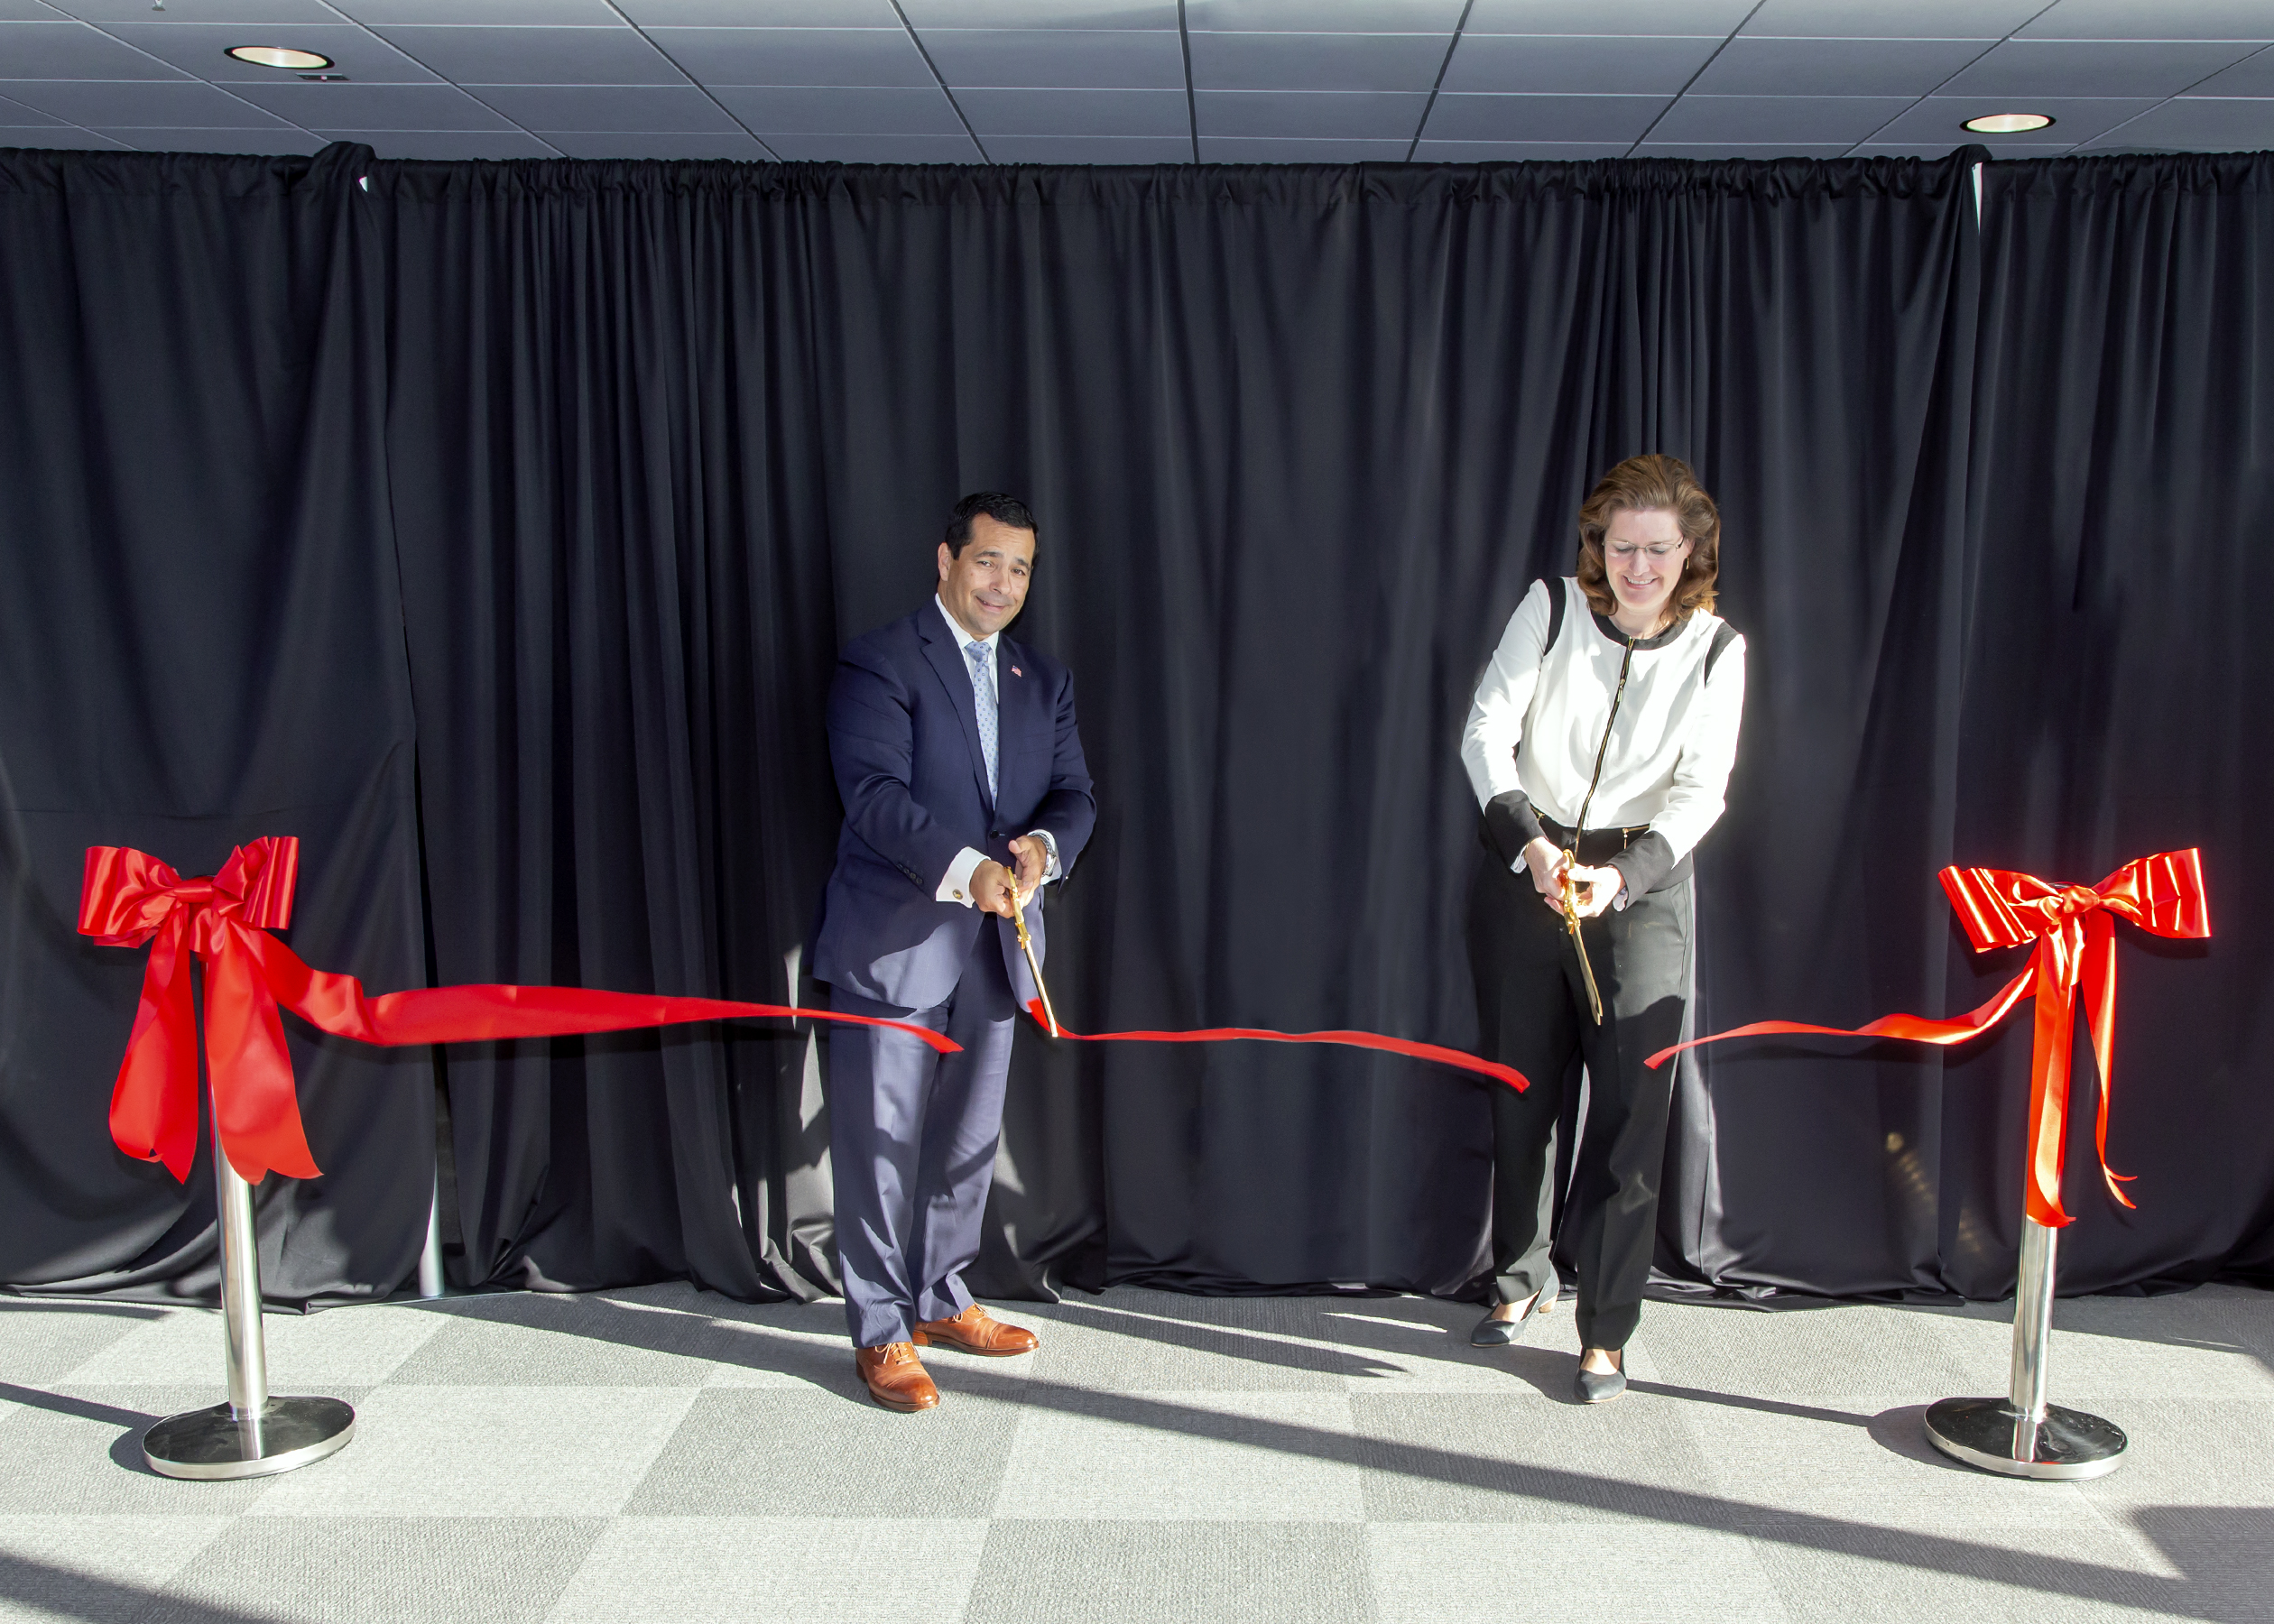 William Evanina & Patricia Larsen official open the Wall of Spies Experience